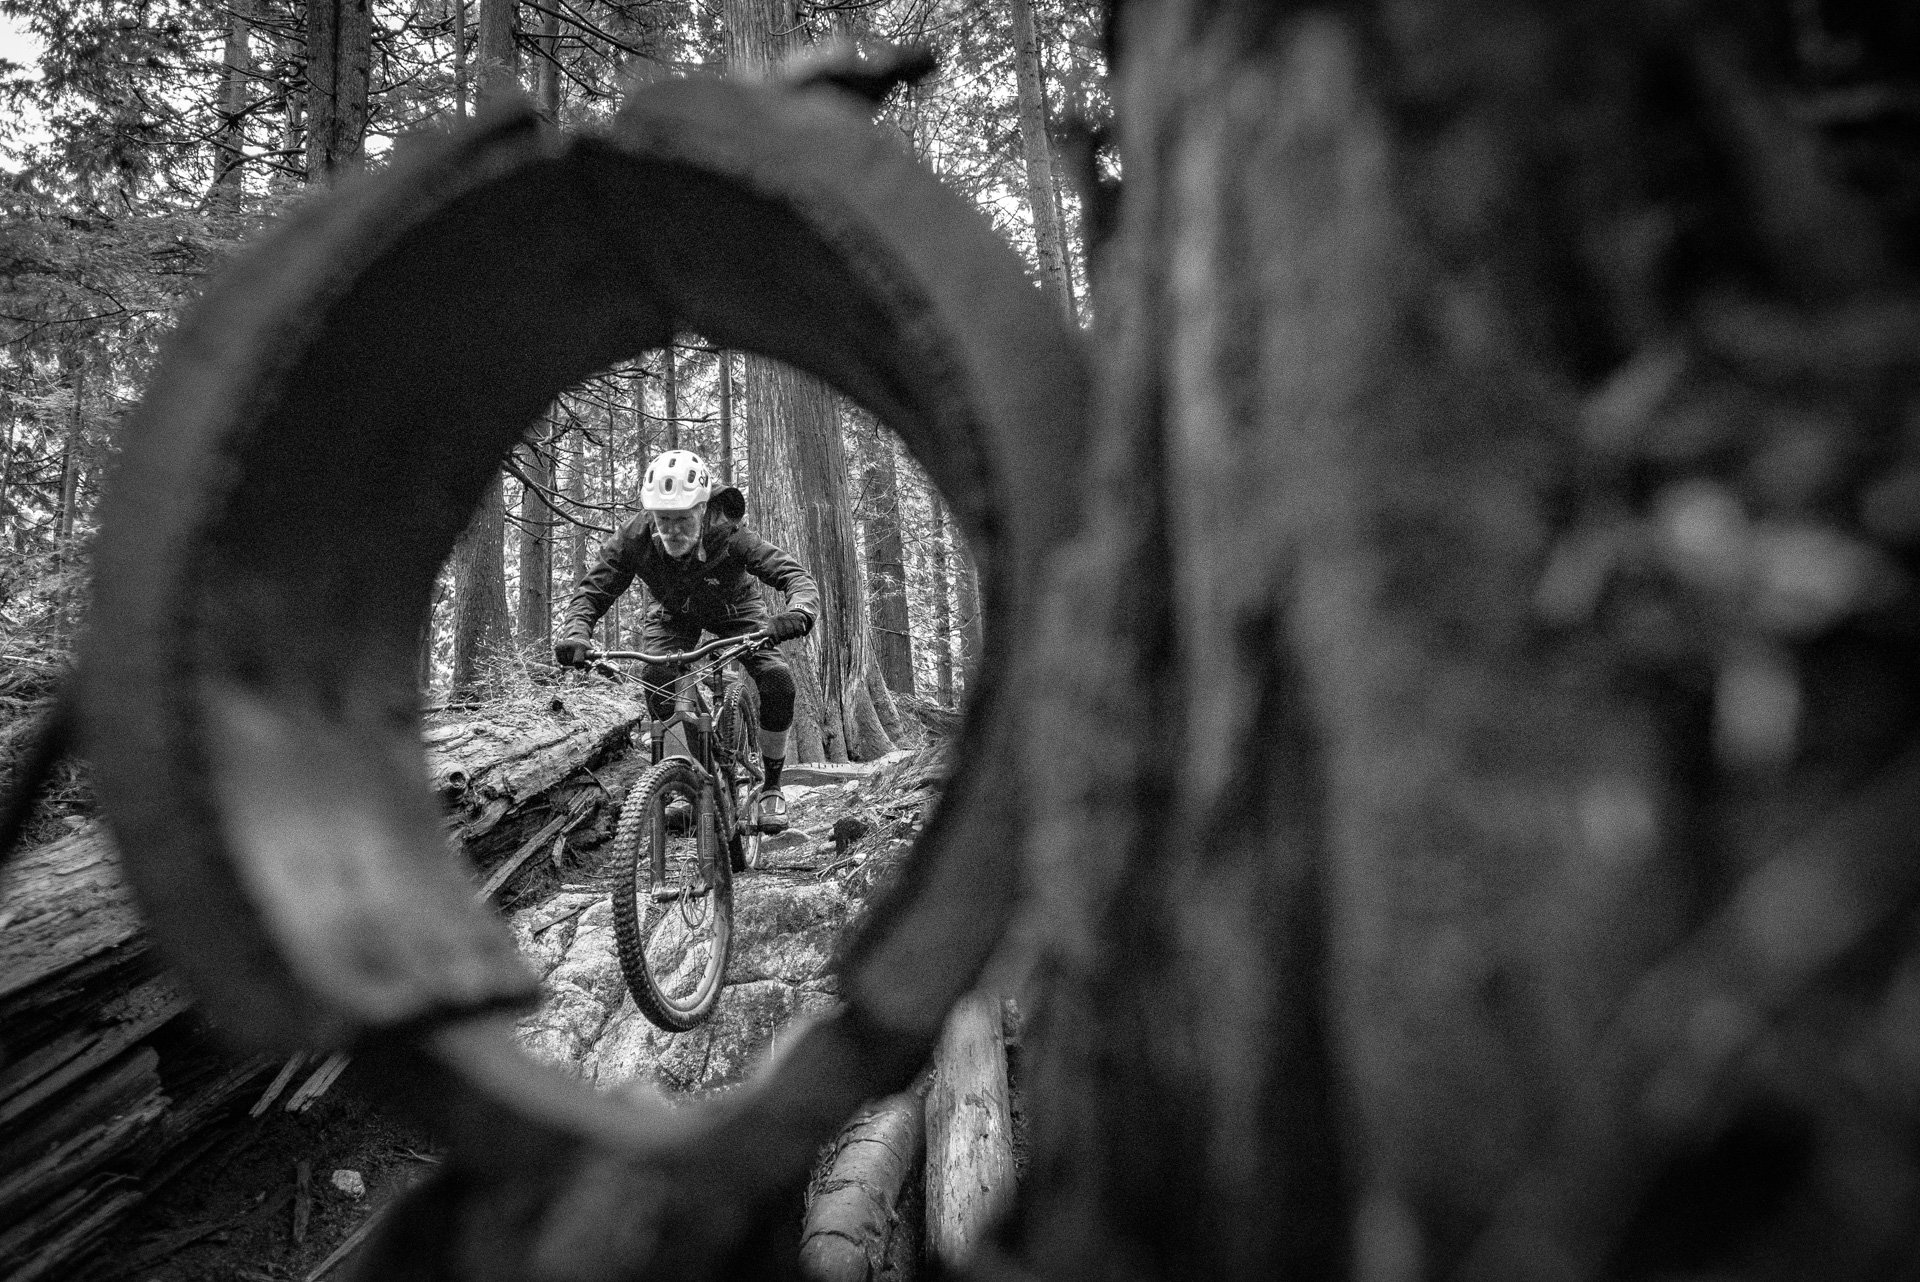 nsmb_2017_geareview_specialized_enduro29_PerrySchebel-7701.jpg